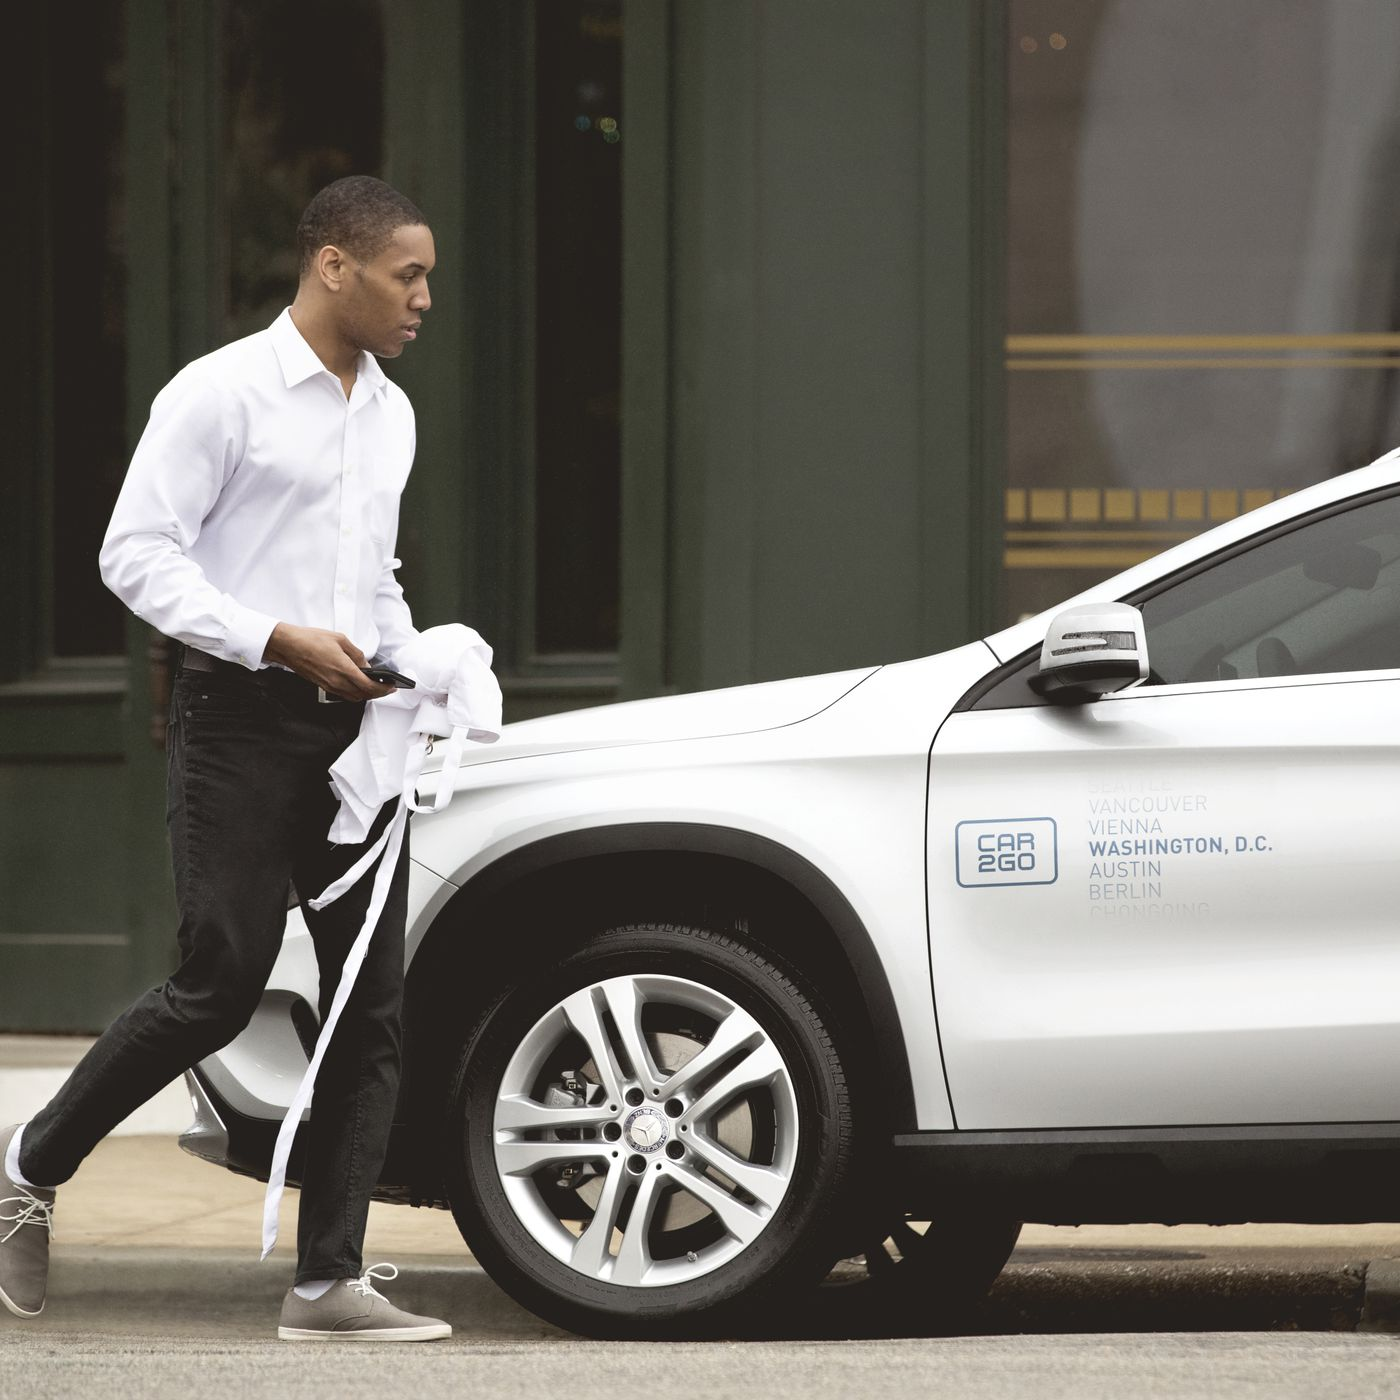 You can now reserve a luxury Mercedes Benz sedan with Car2Go in NYC